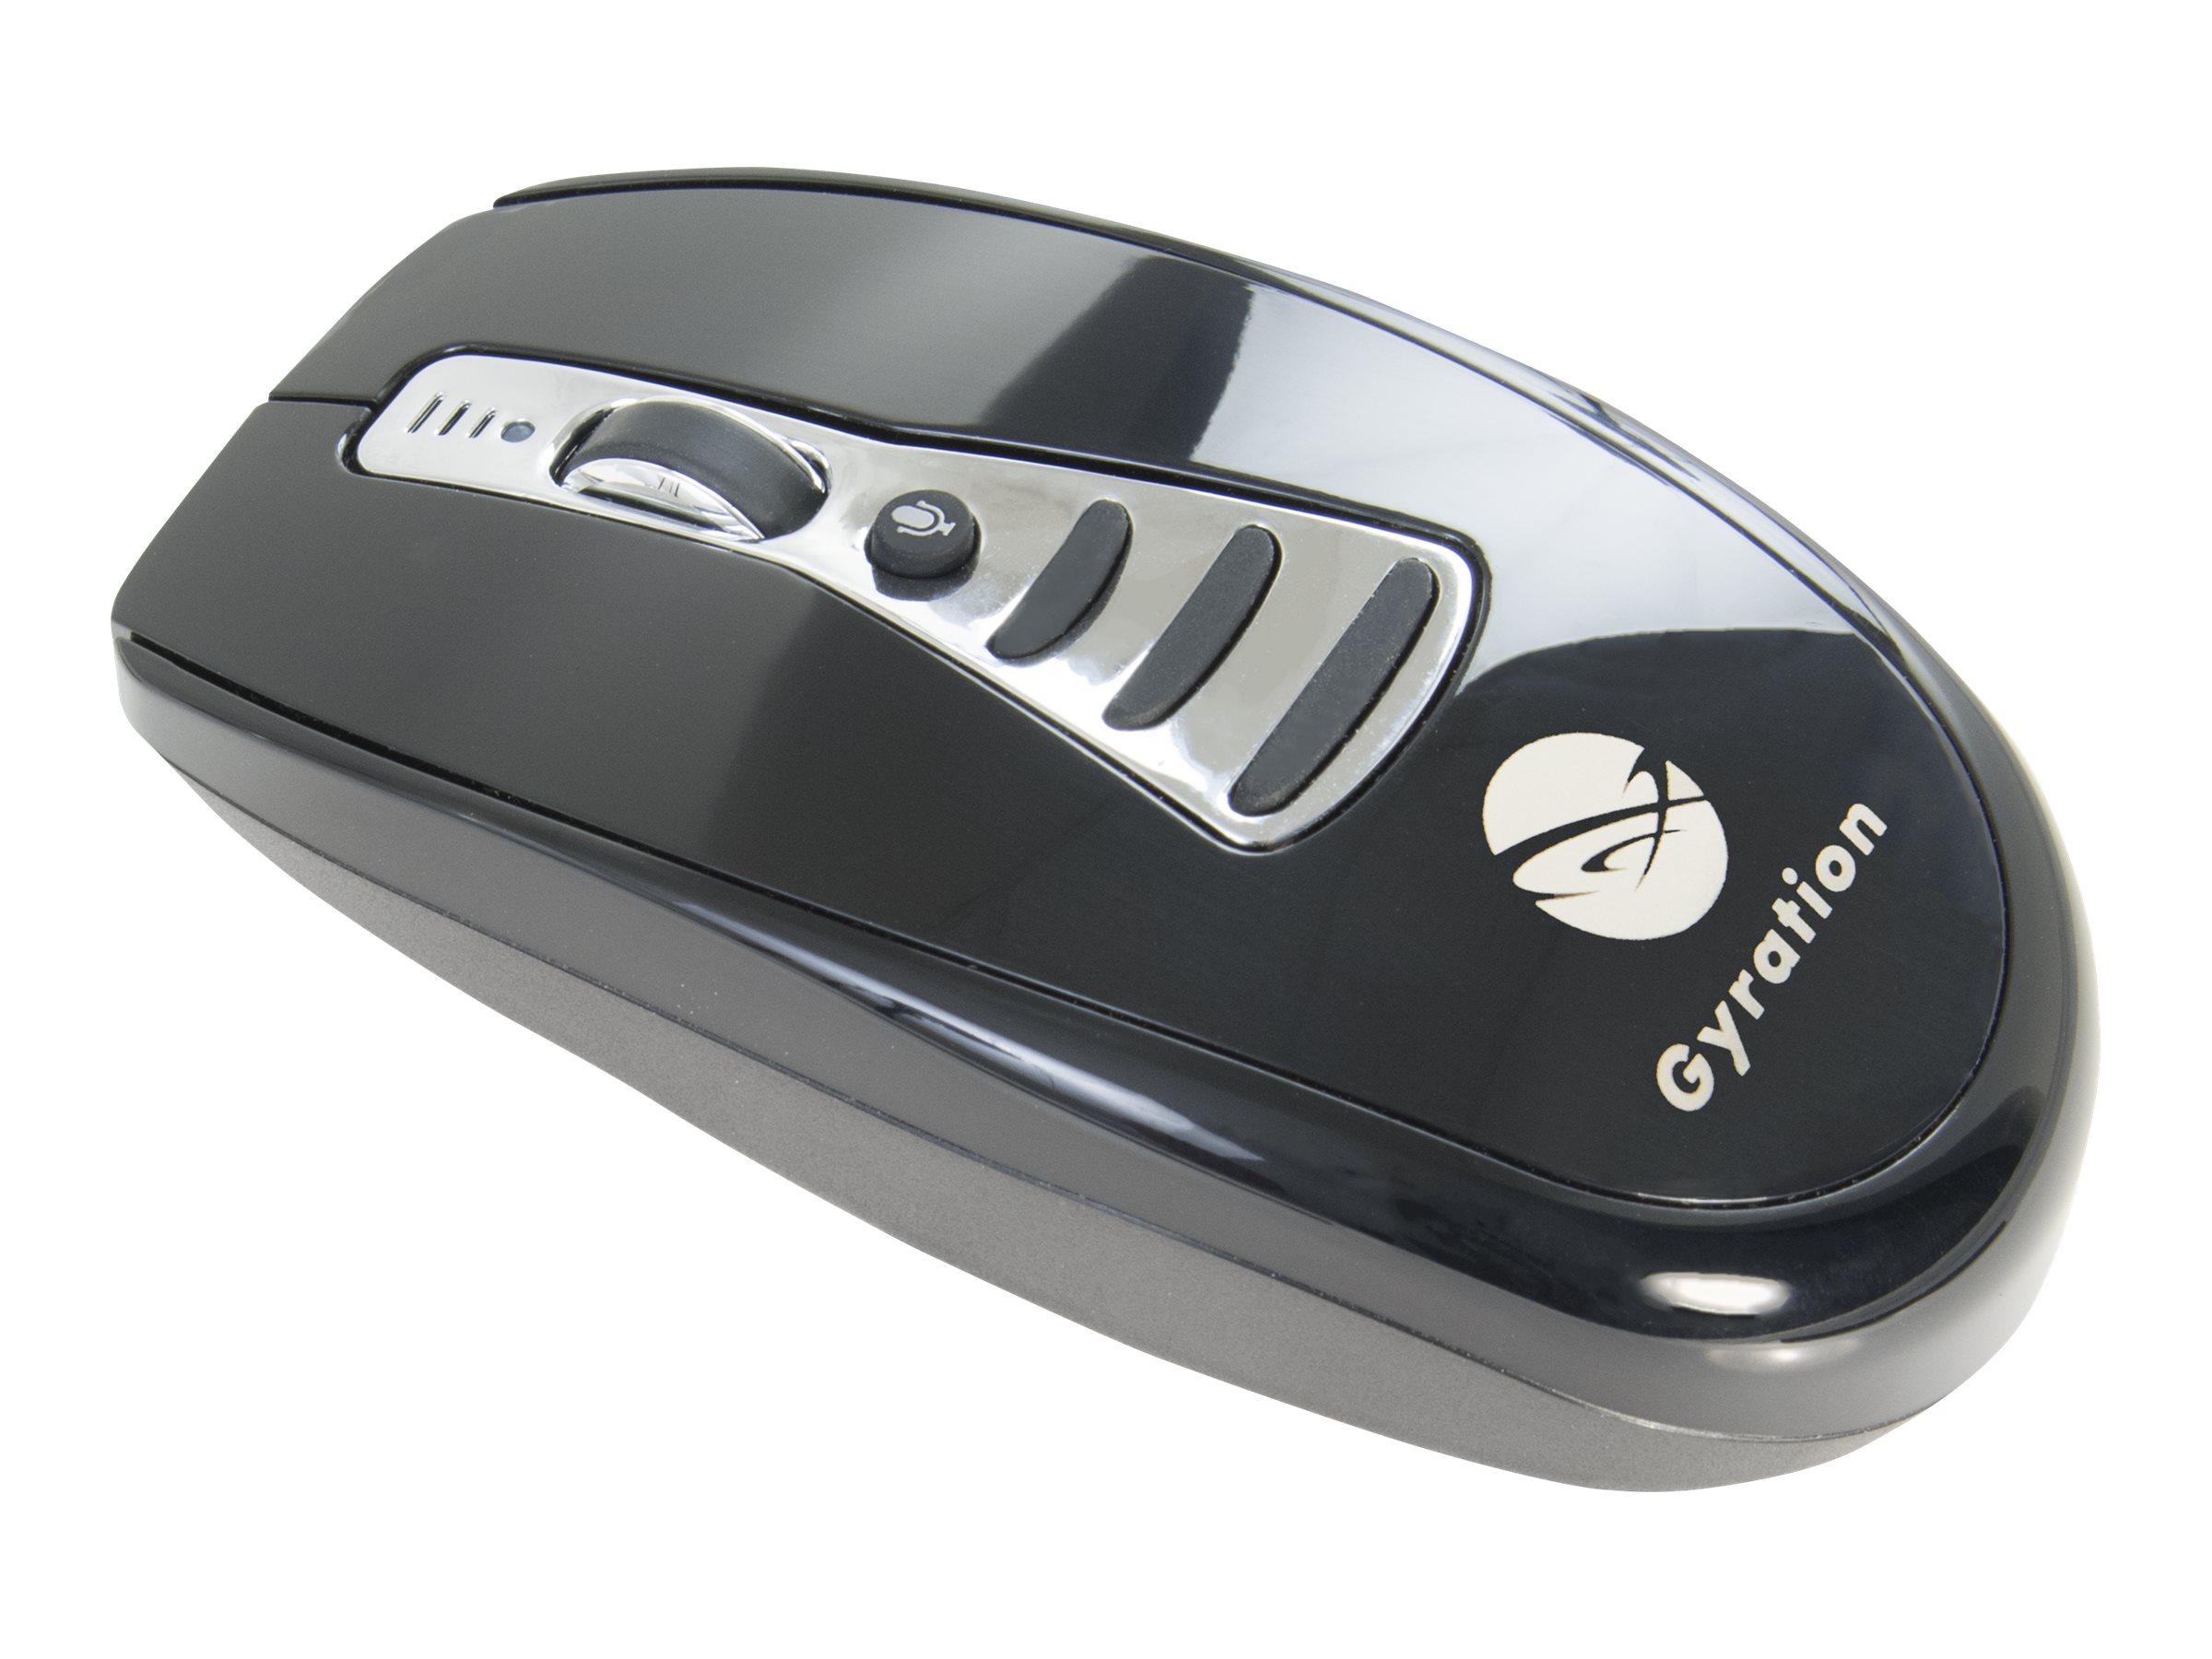 Gyration Air Mouse Voice Enabled Presentation Remote, GYM3300